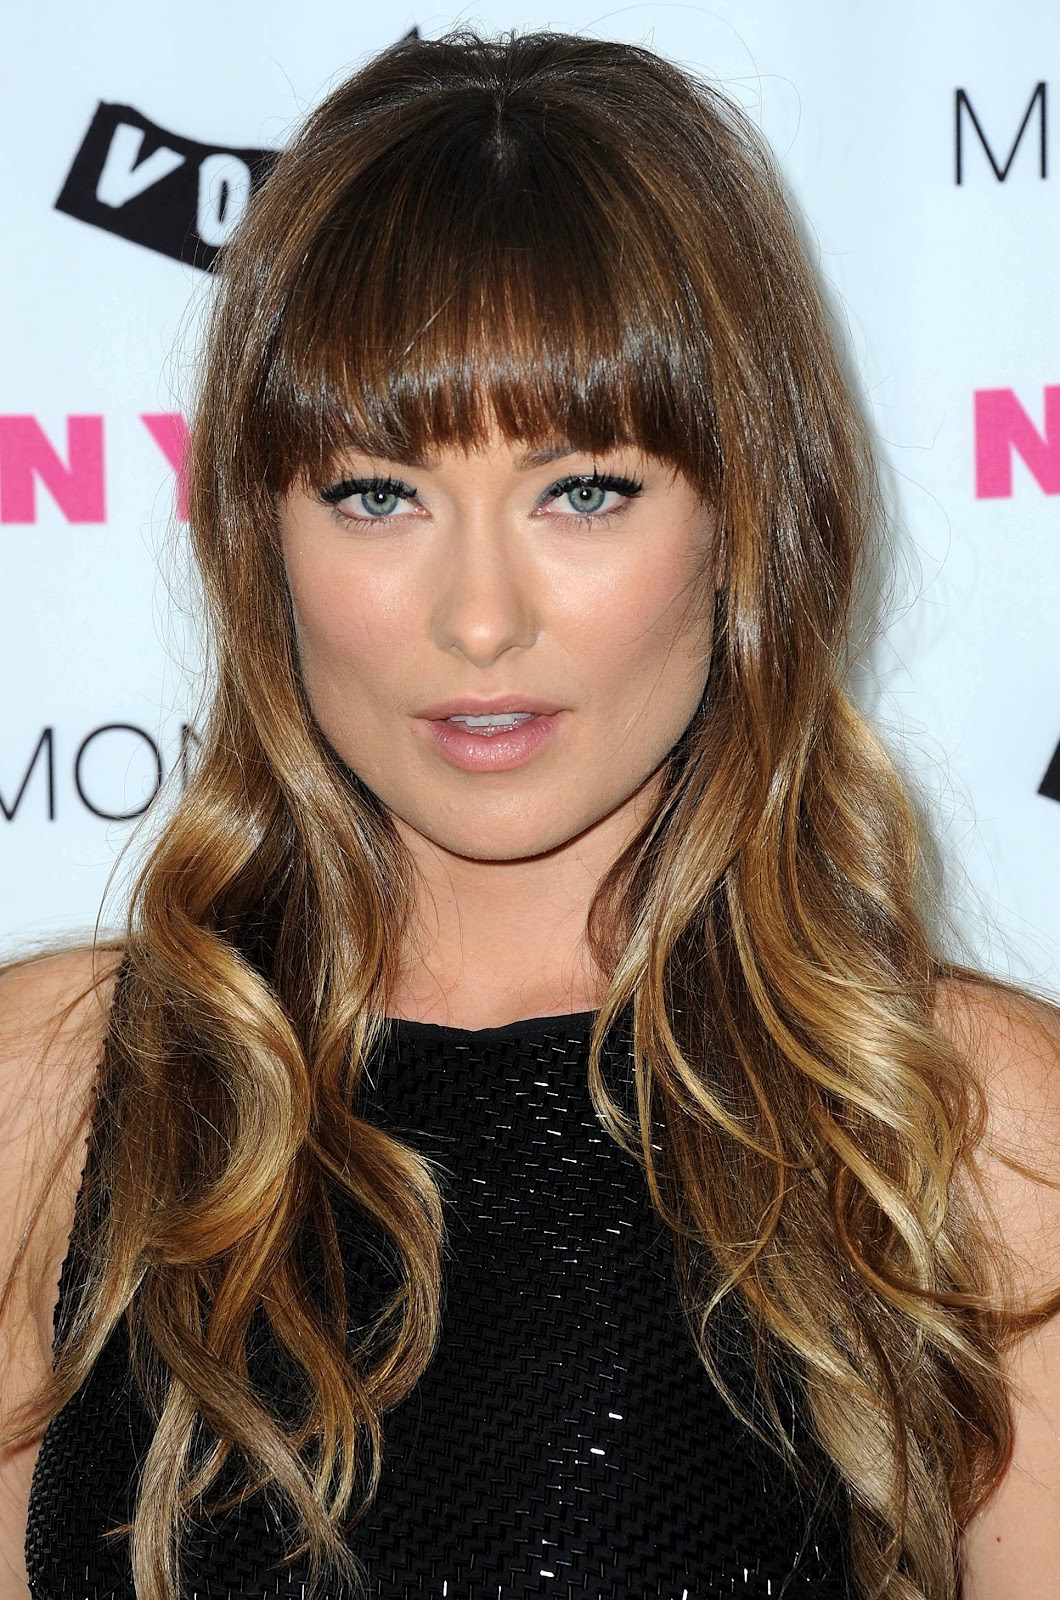 Olivia Wilde Special Pictures: She Said...: The Ombre Look